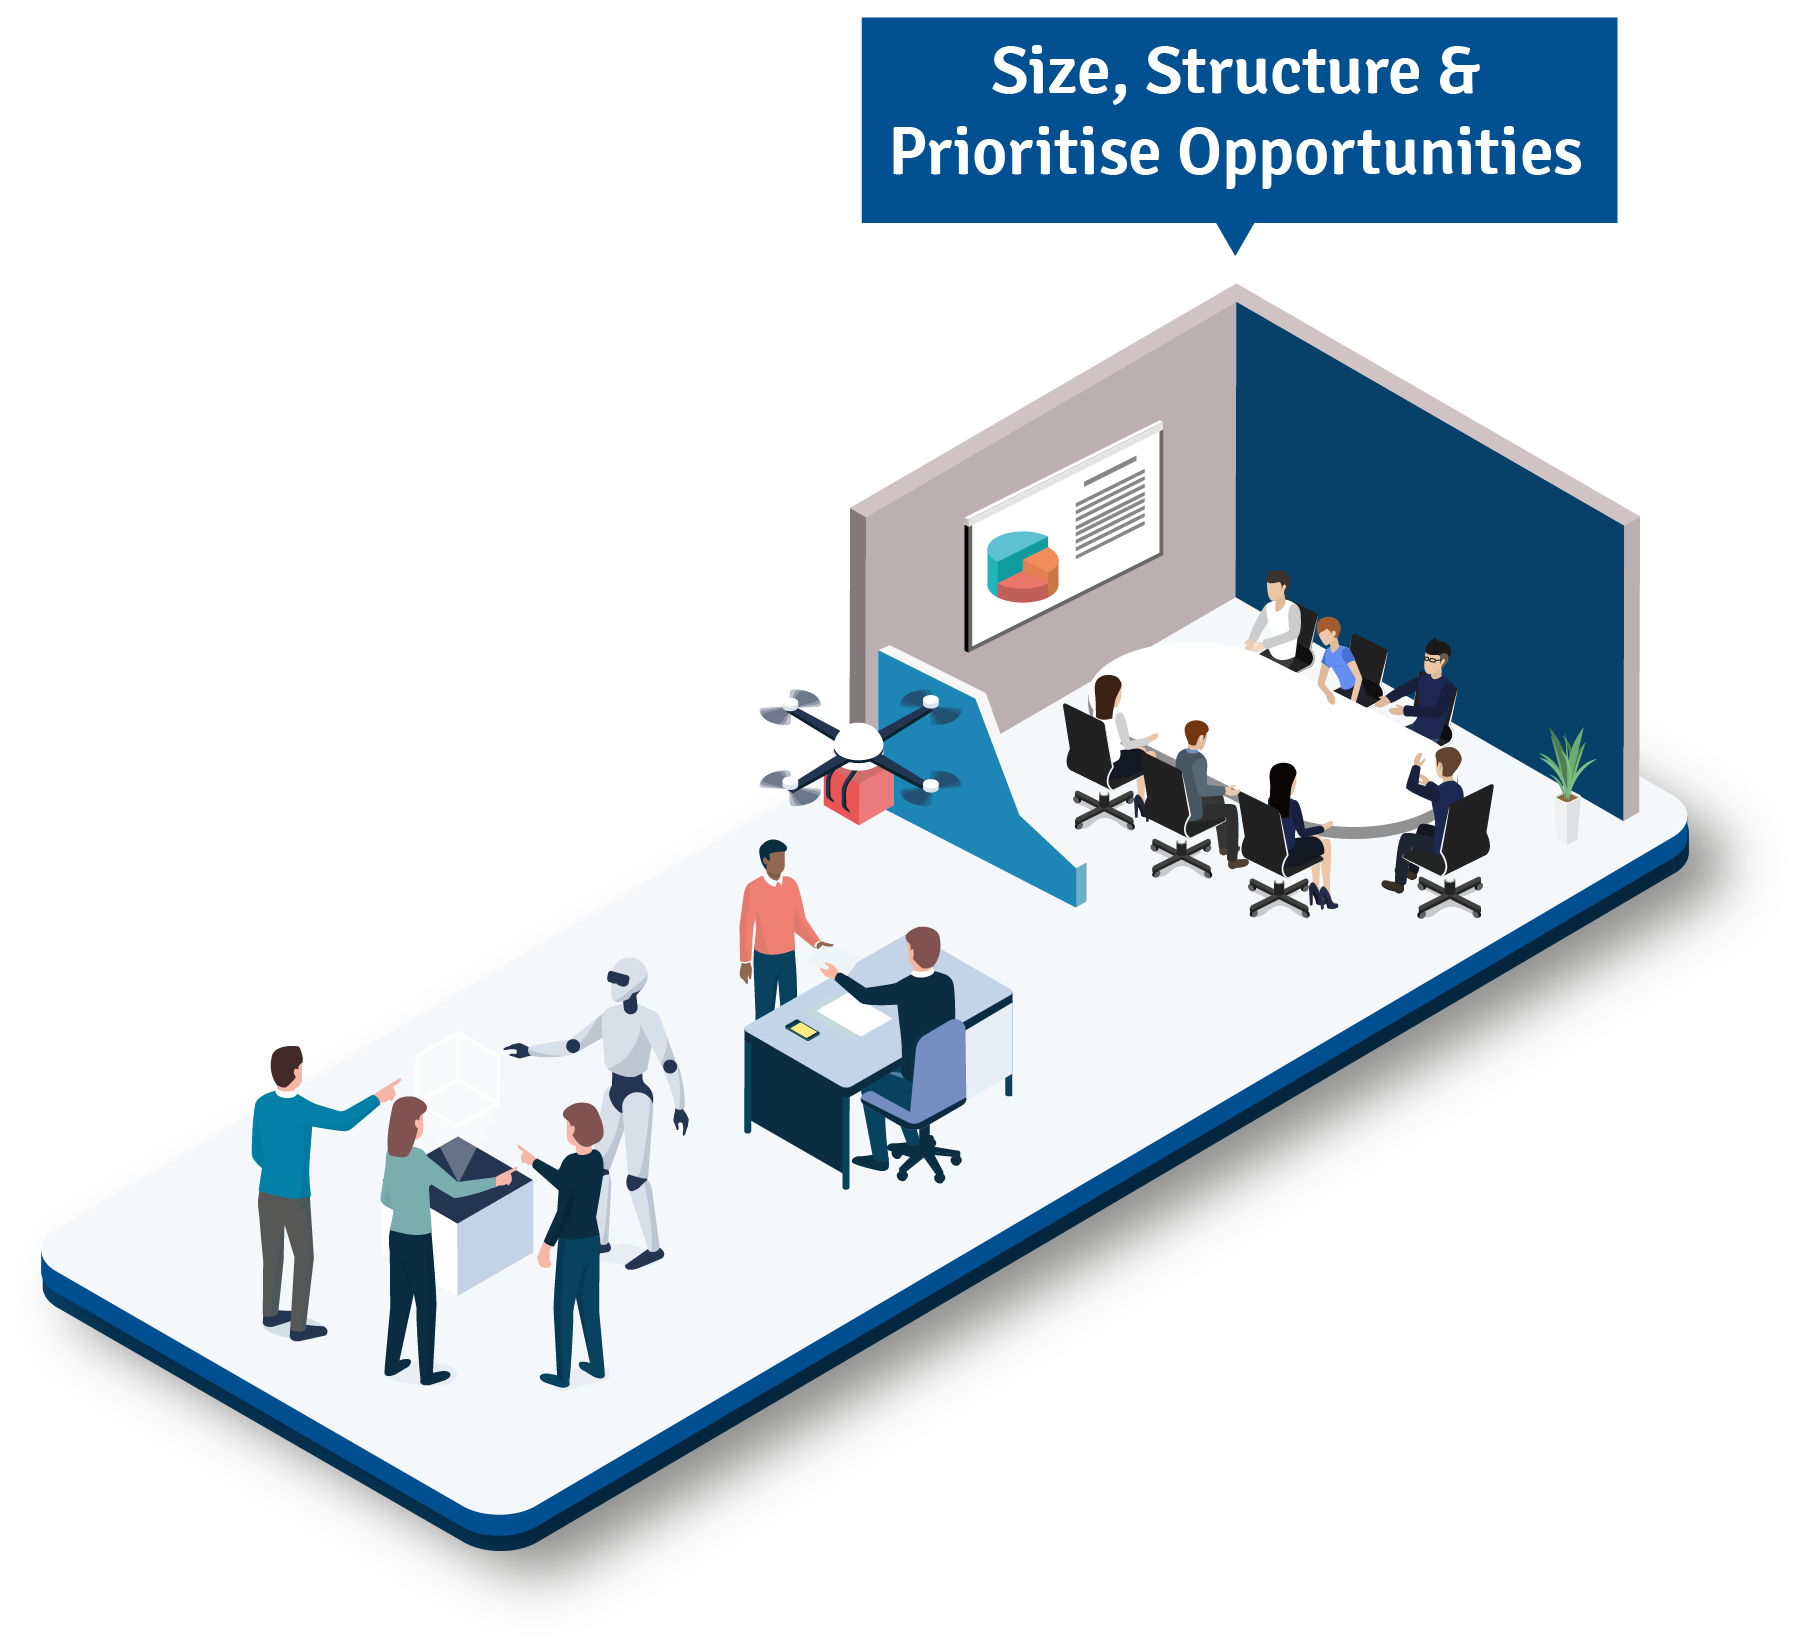 Size, Structure & Prioritise Opportunities